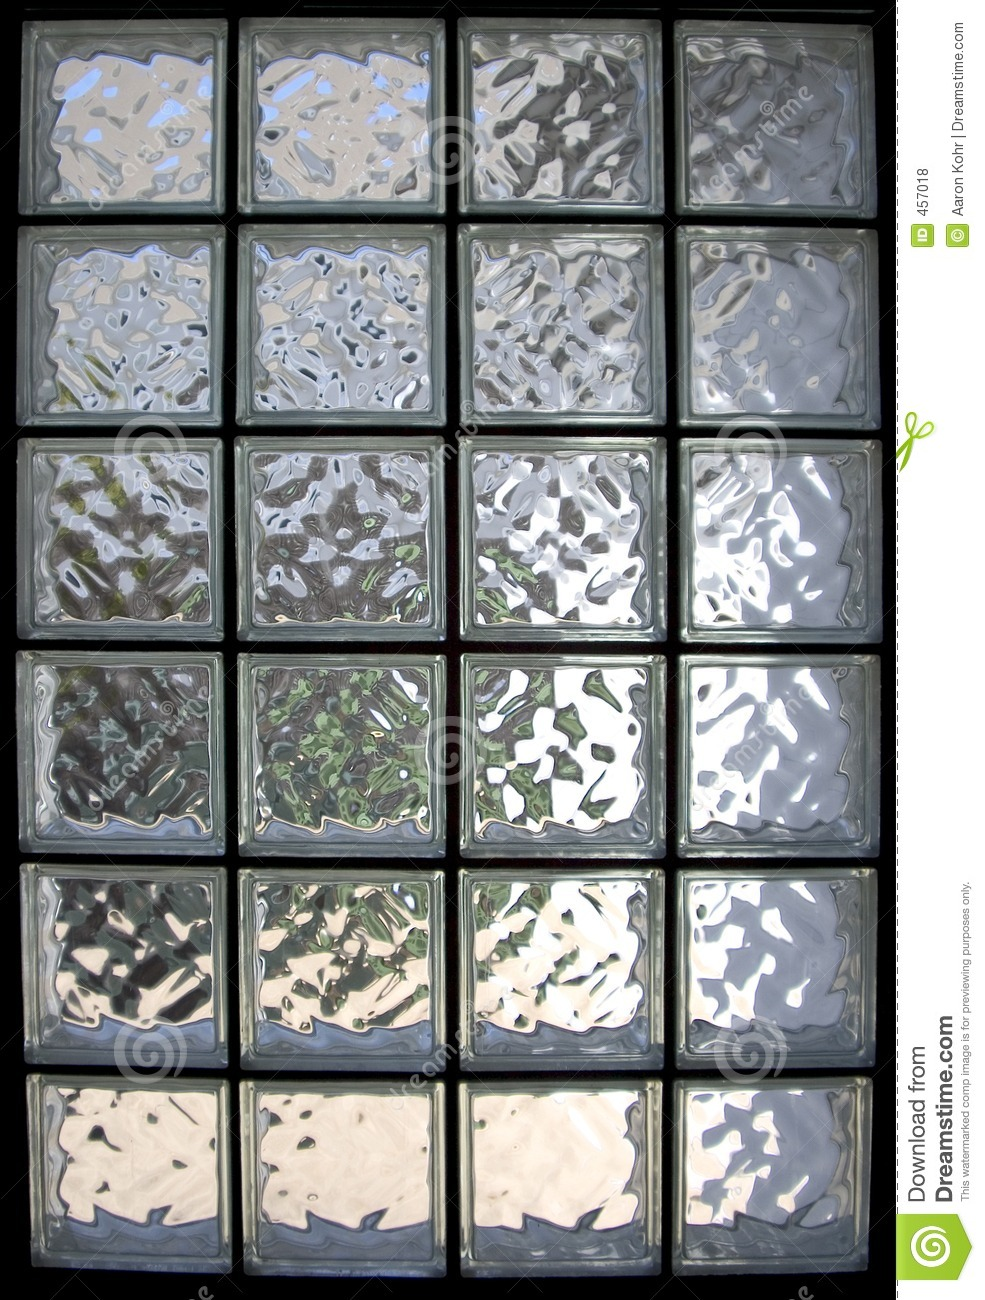 Glass brick window royalty free stock photos image 457018 for Glass bricks designs